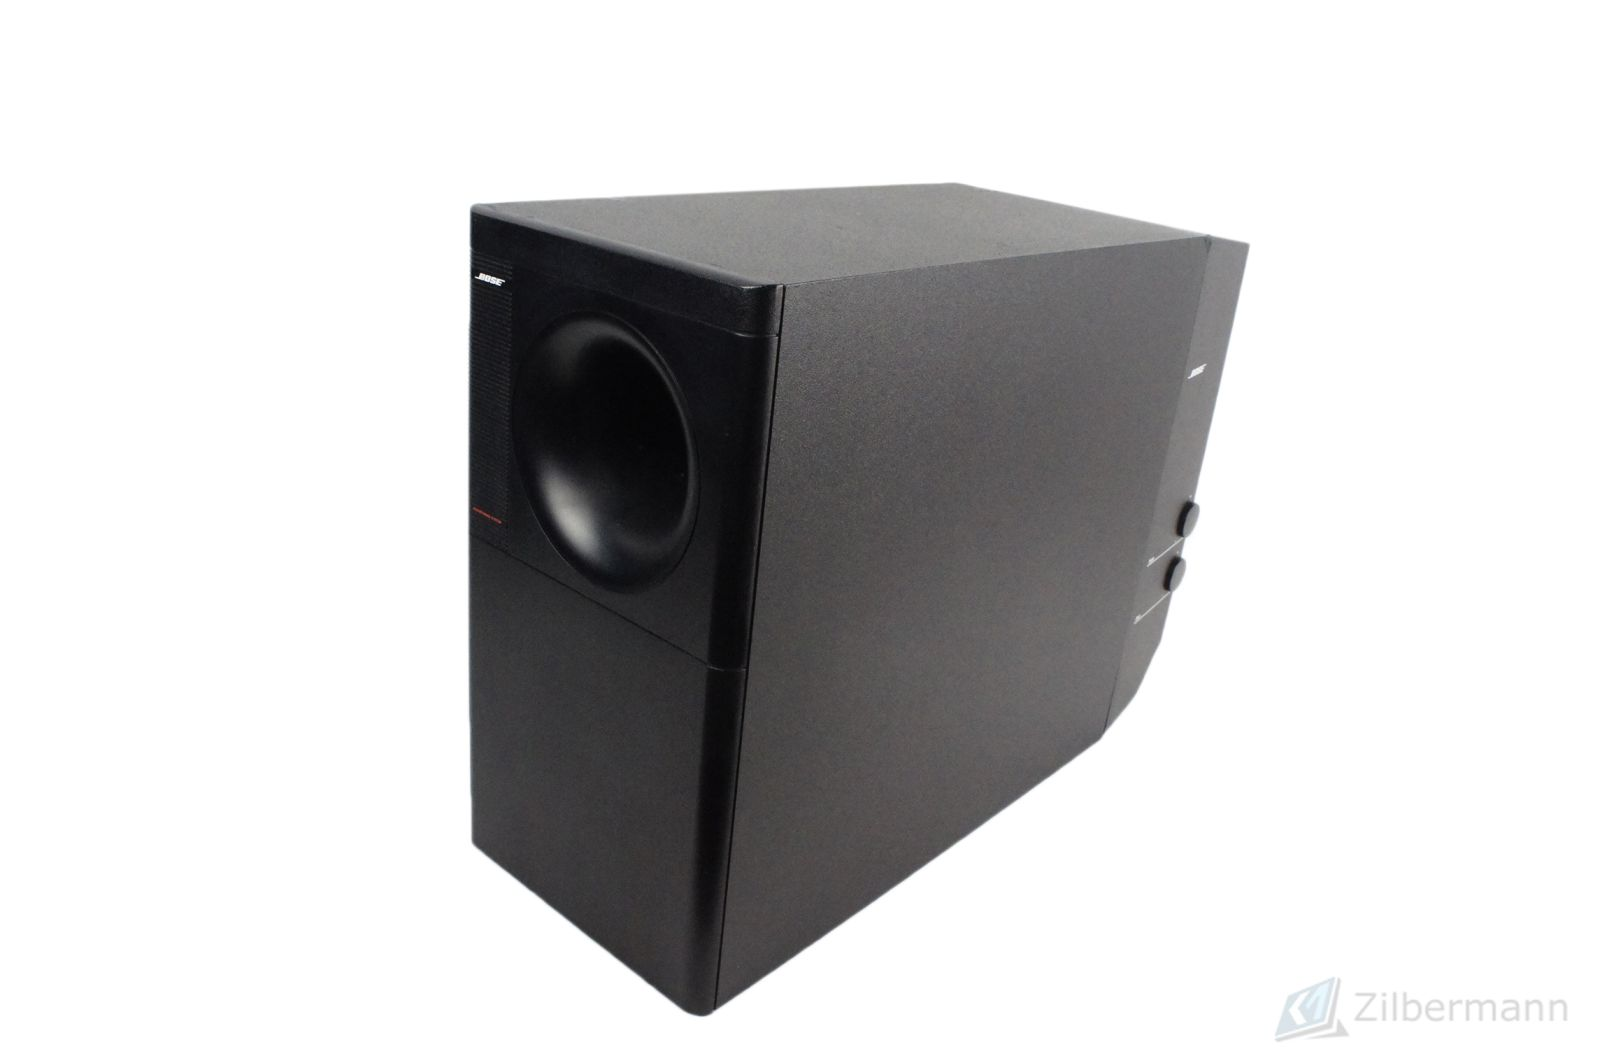 Bose_Powered_Acoustimass_8_Series_II_5.1_Subwoofer_Aktiv_04